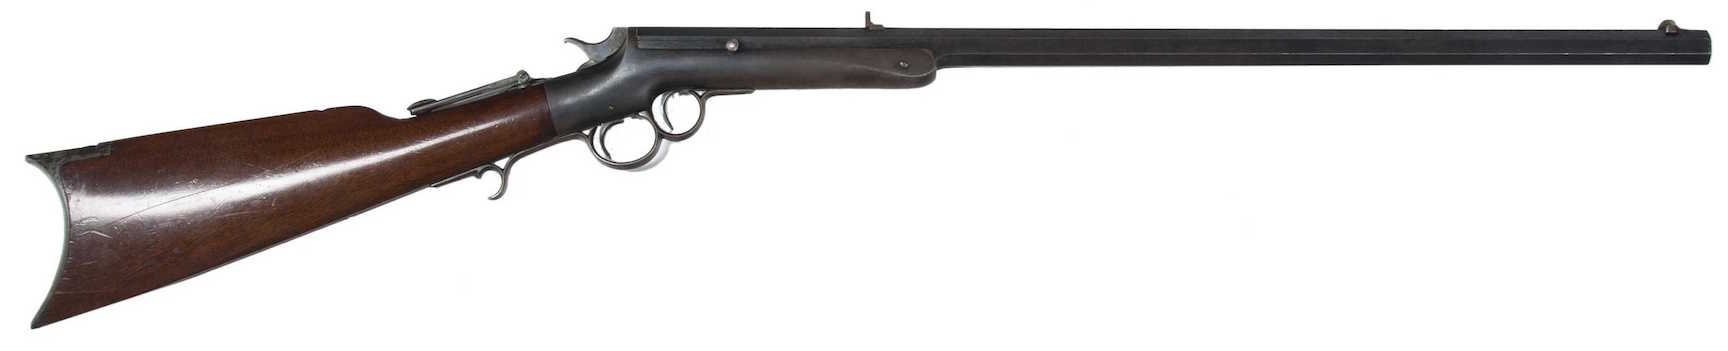 Frank Wesson Rifle